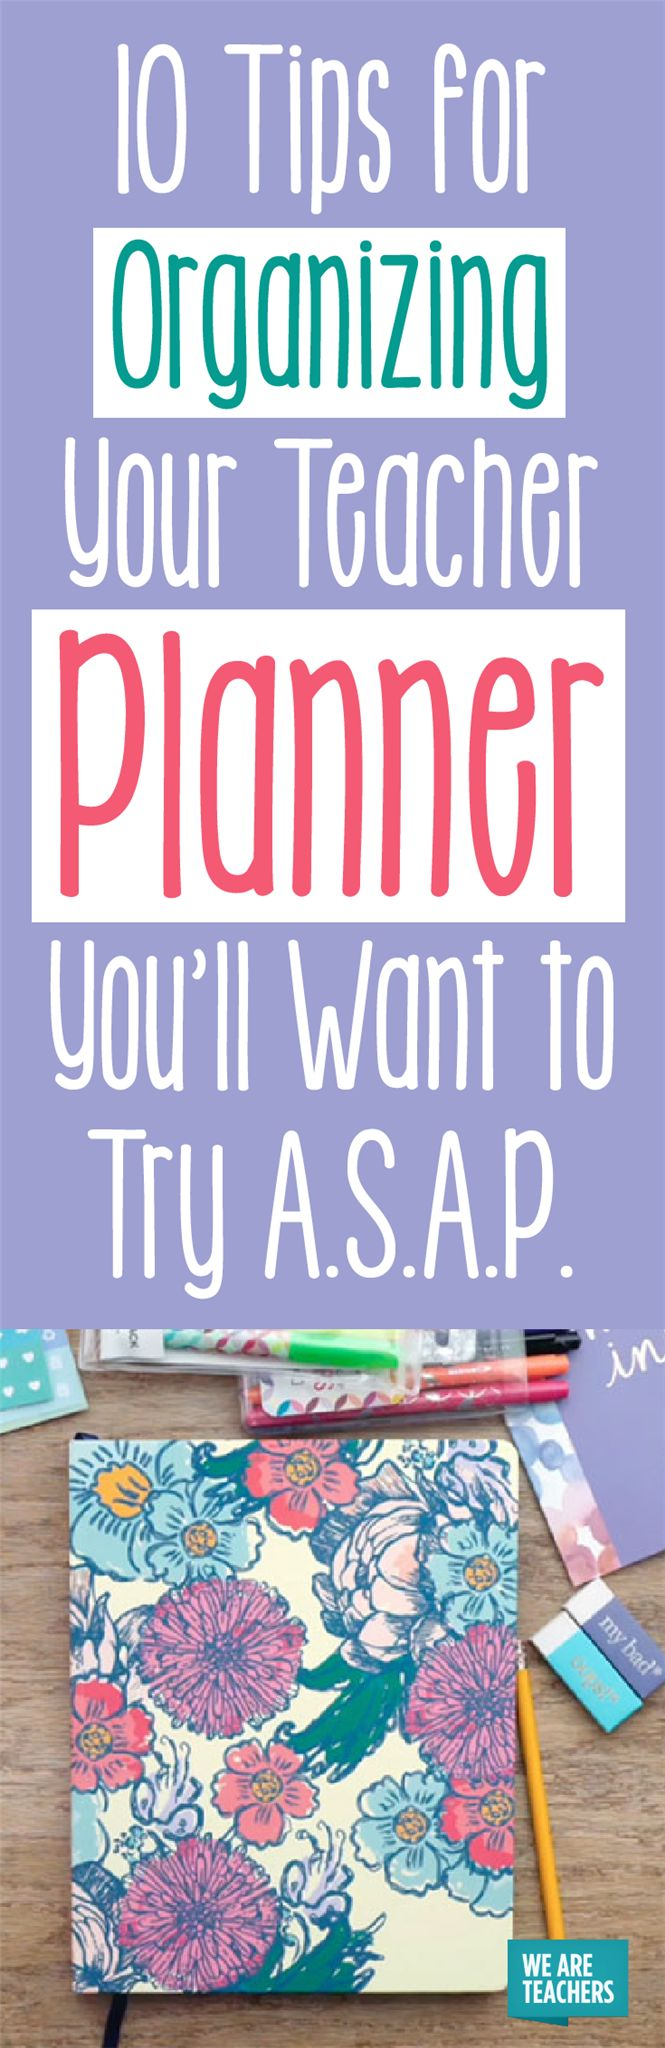 Love these tips and tricks for organizing a teacher planner!